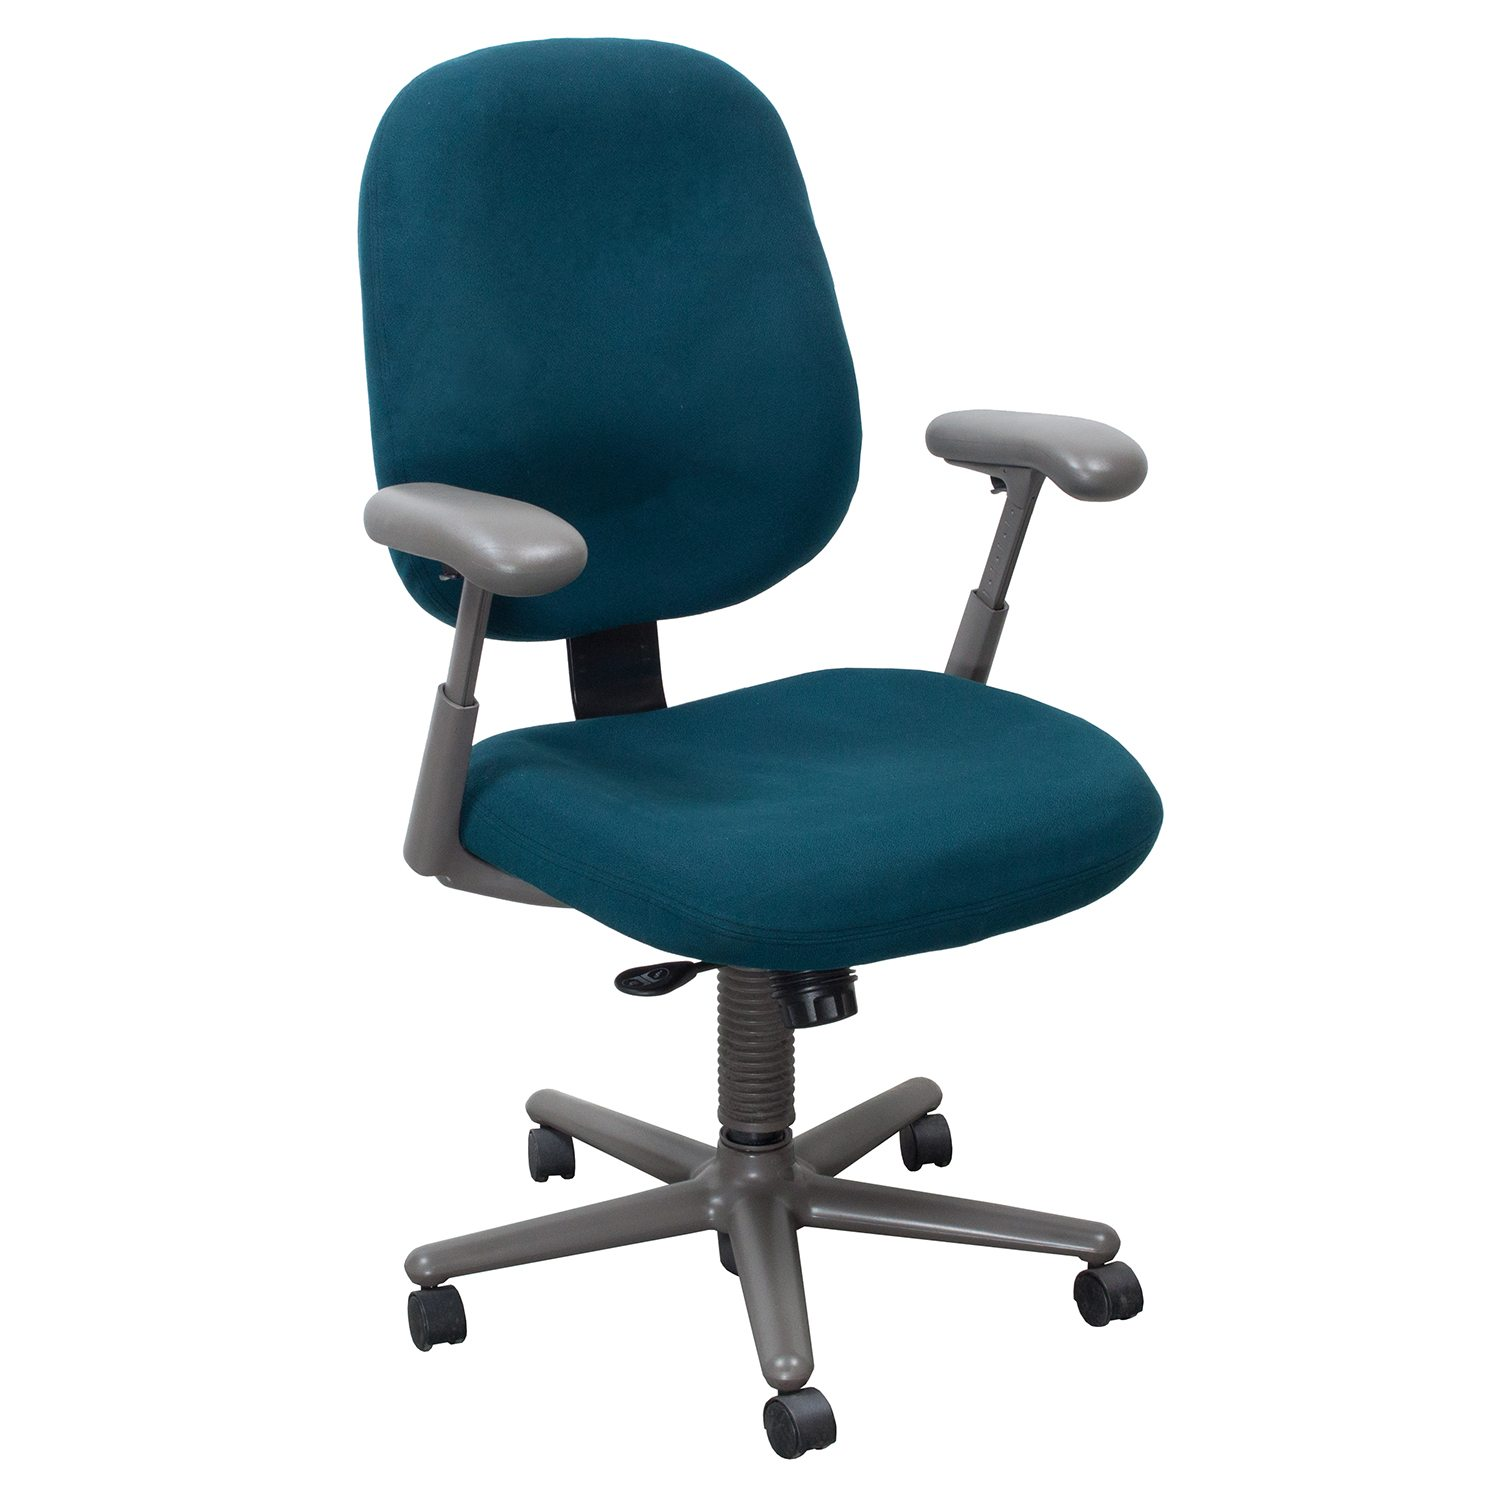 teal office chair captain chairs for boats herman miller ergon used high back task